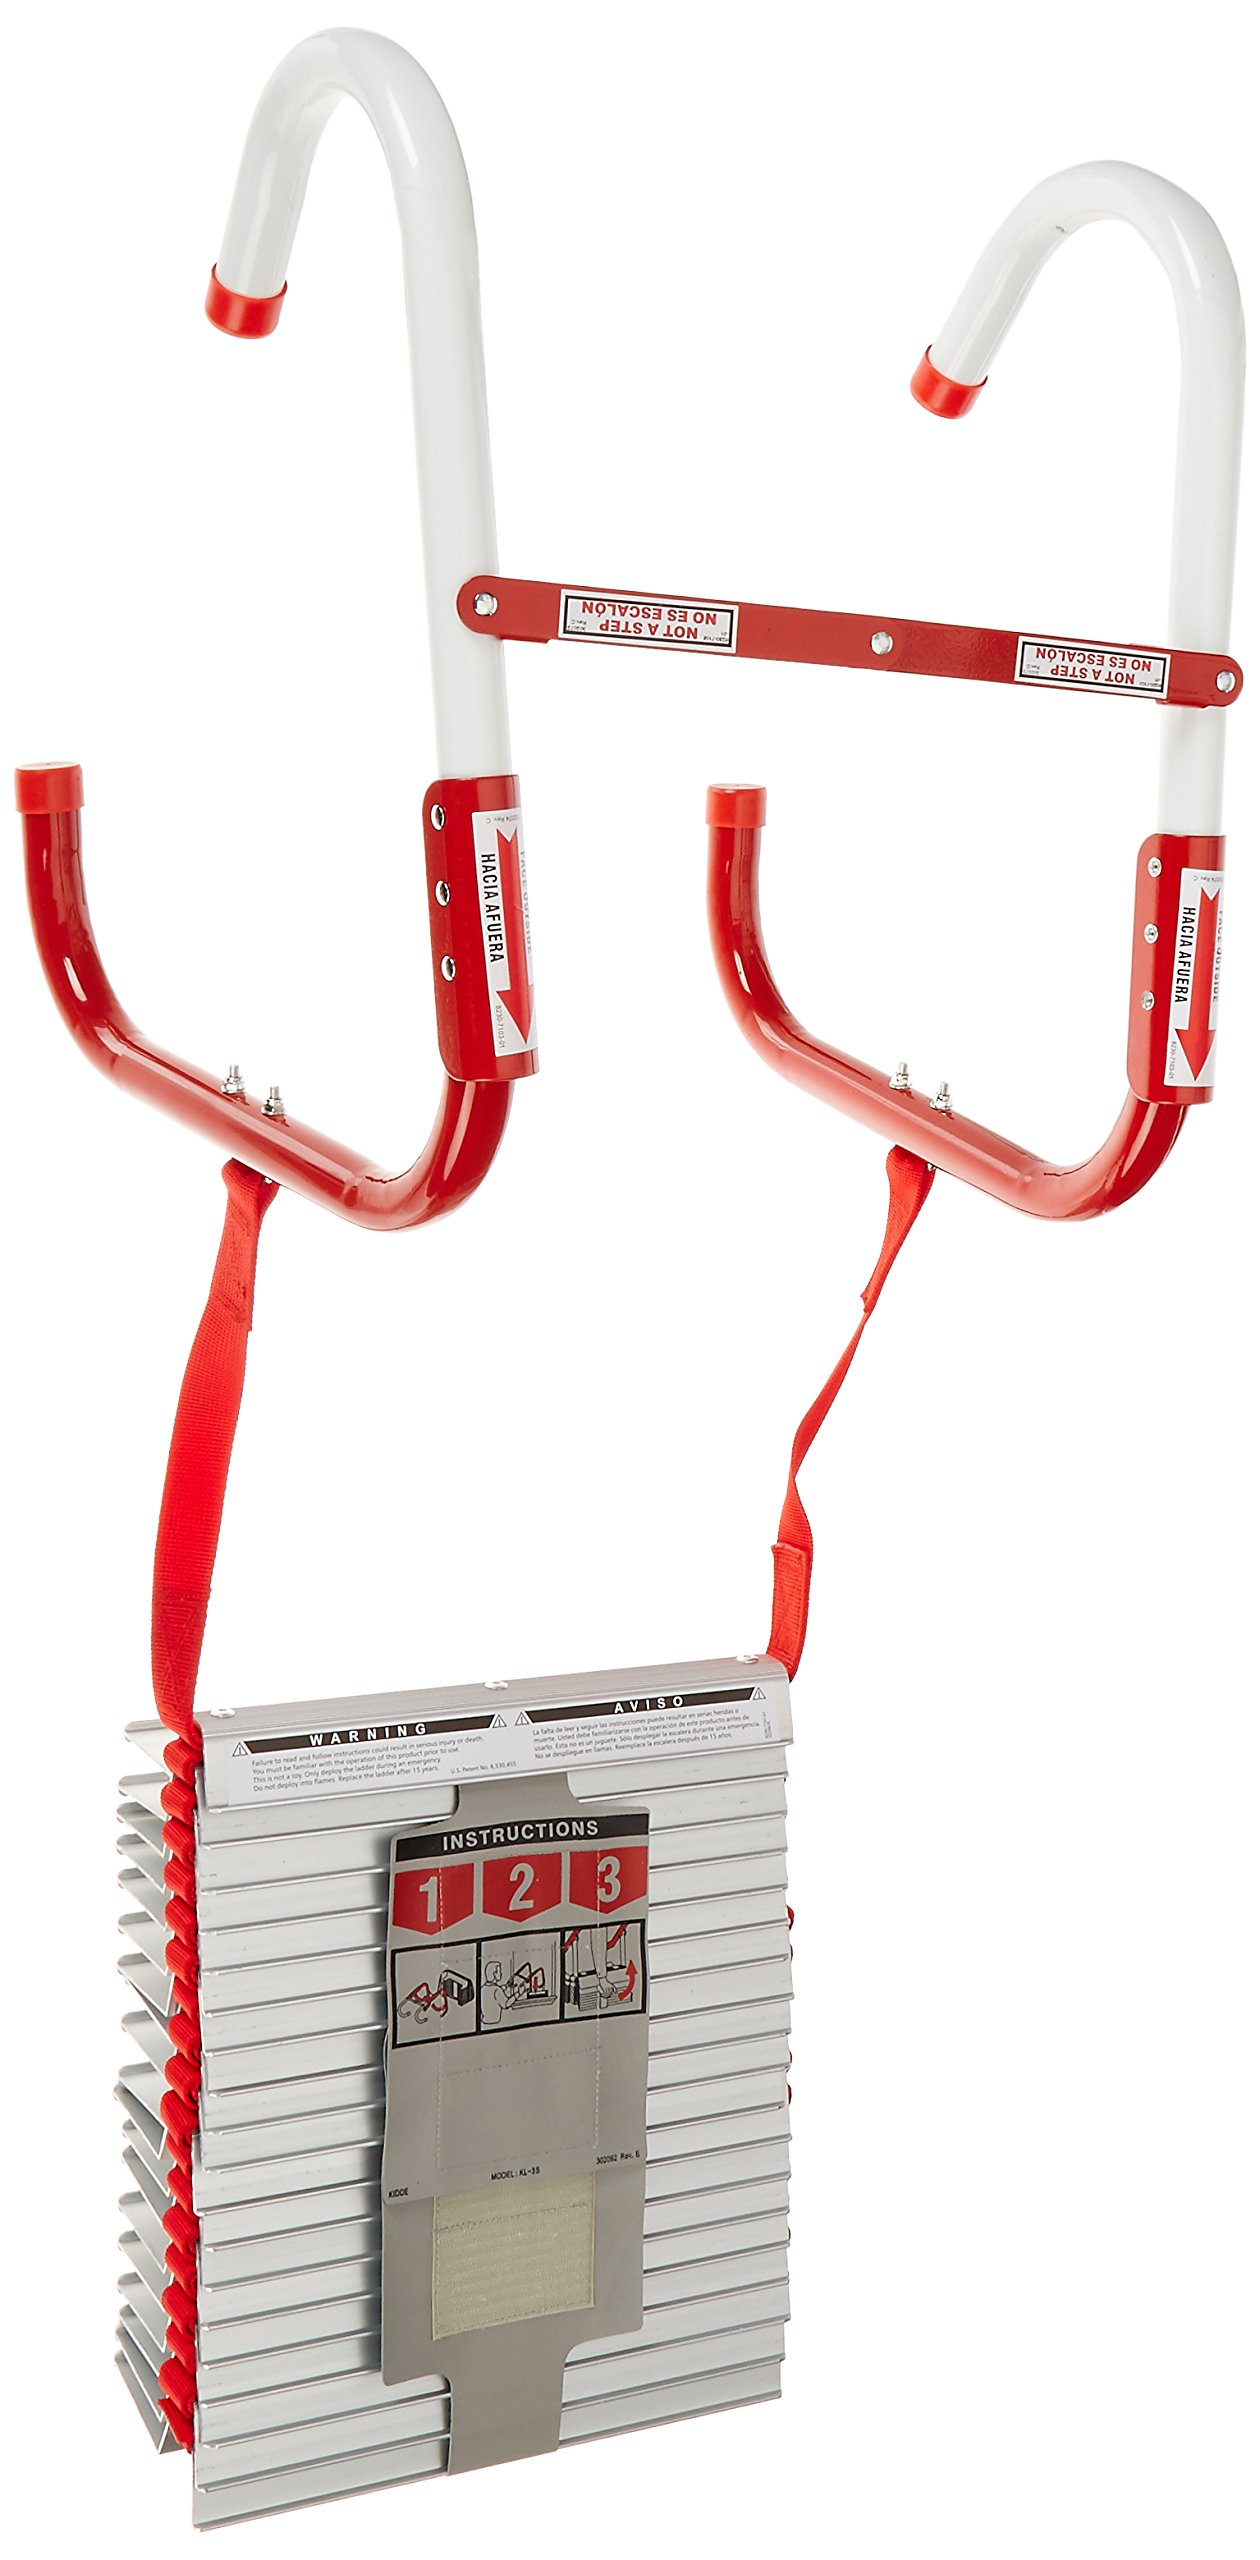 25' 3 Story Escape Ladder by Kidde